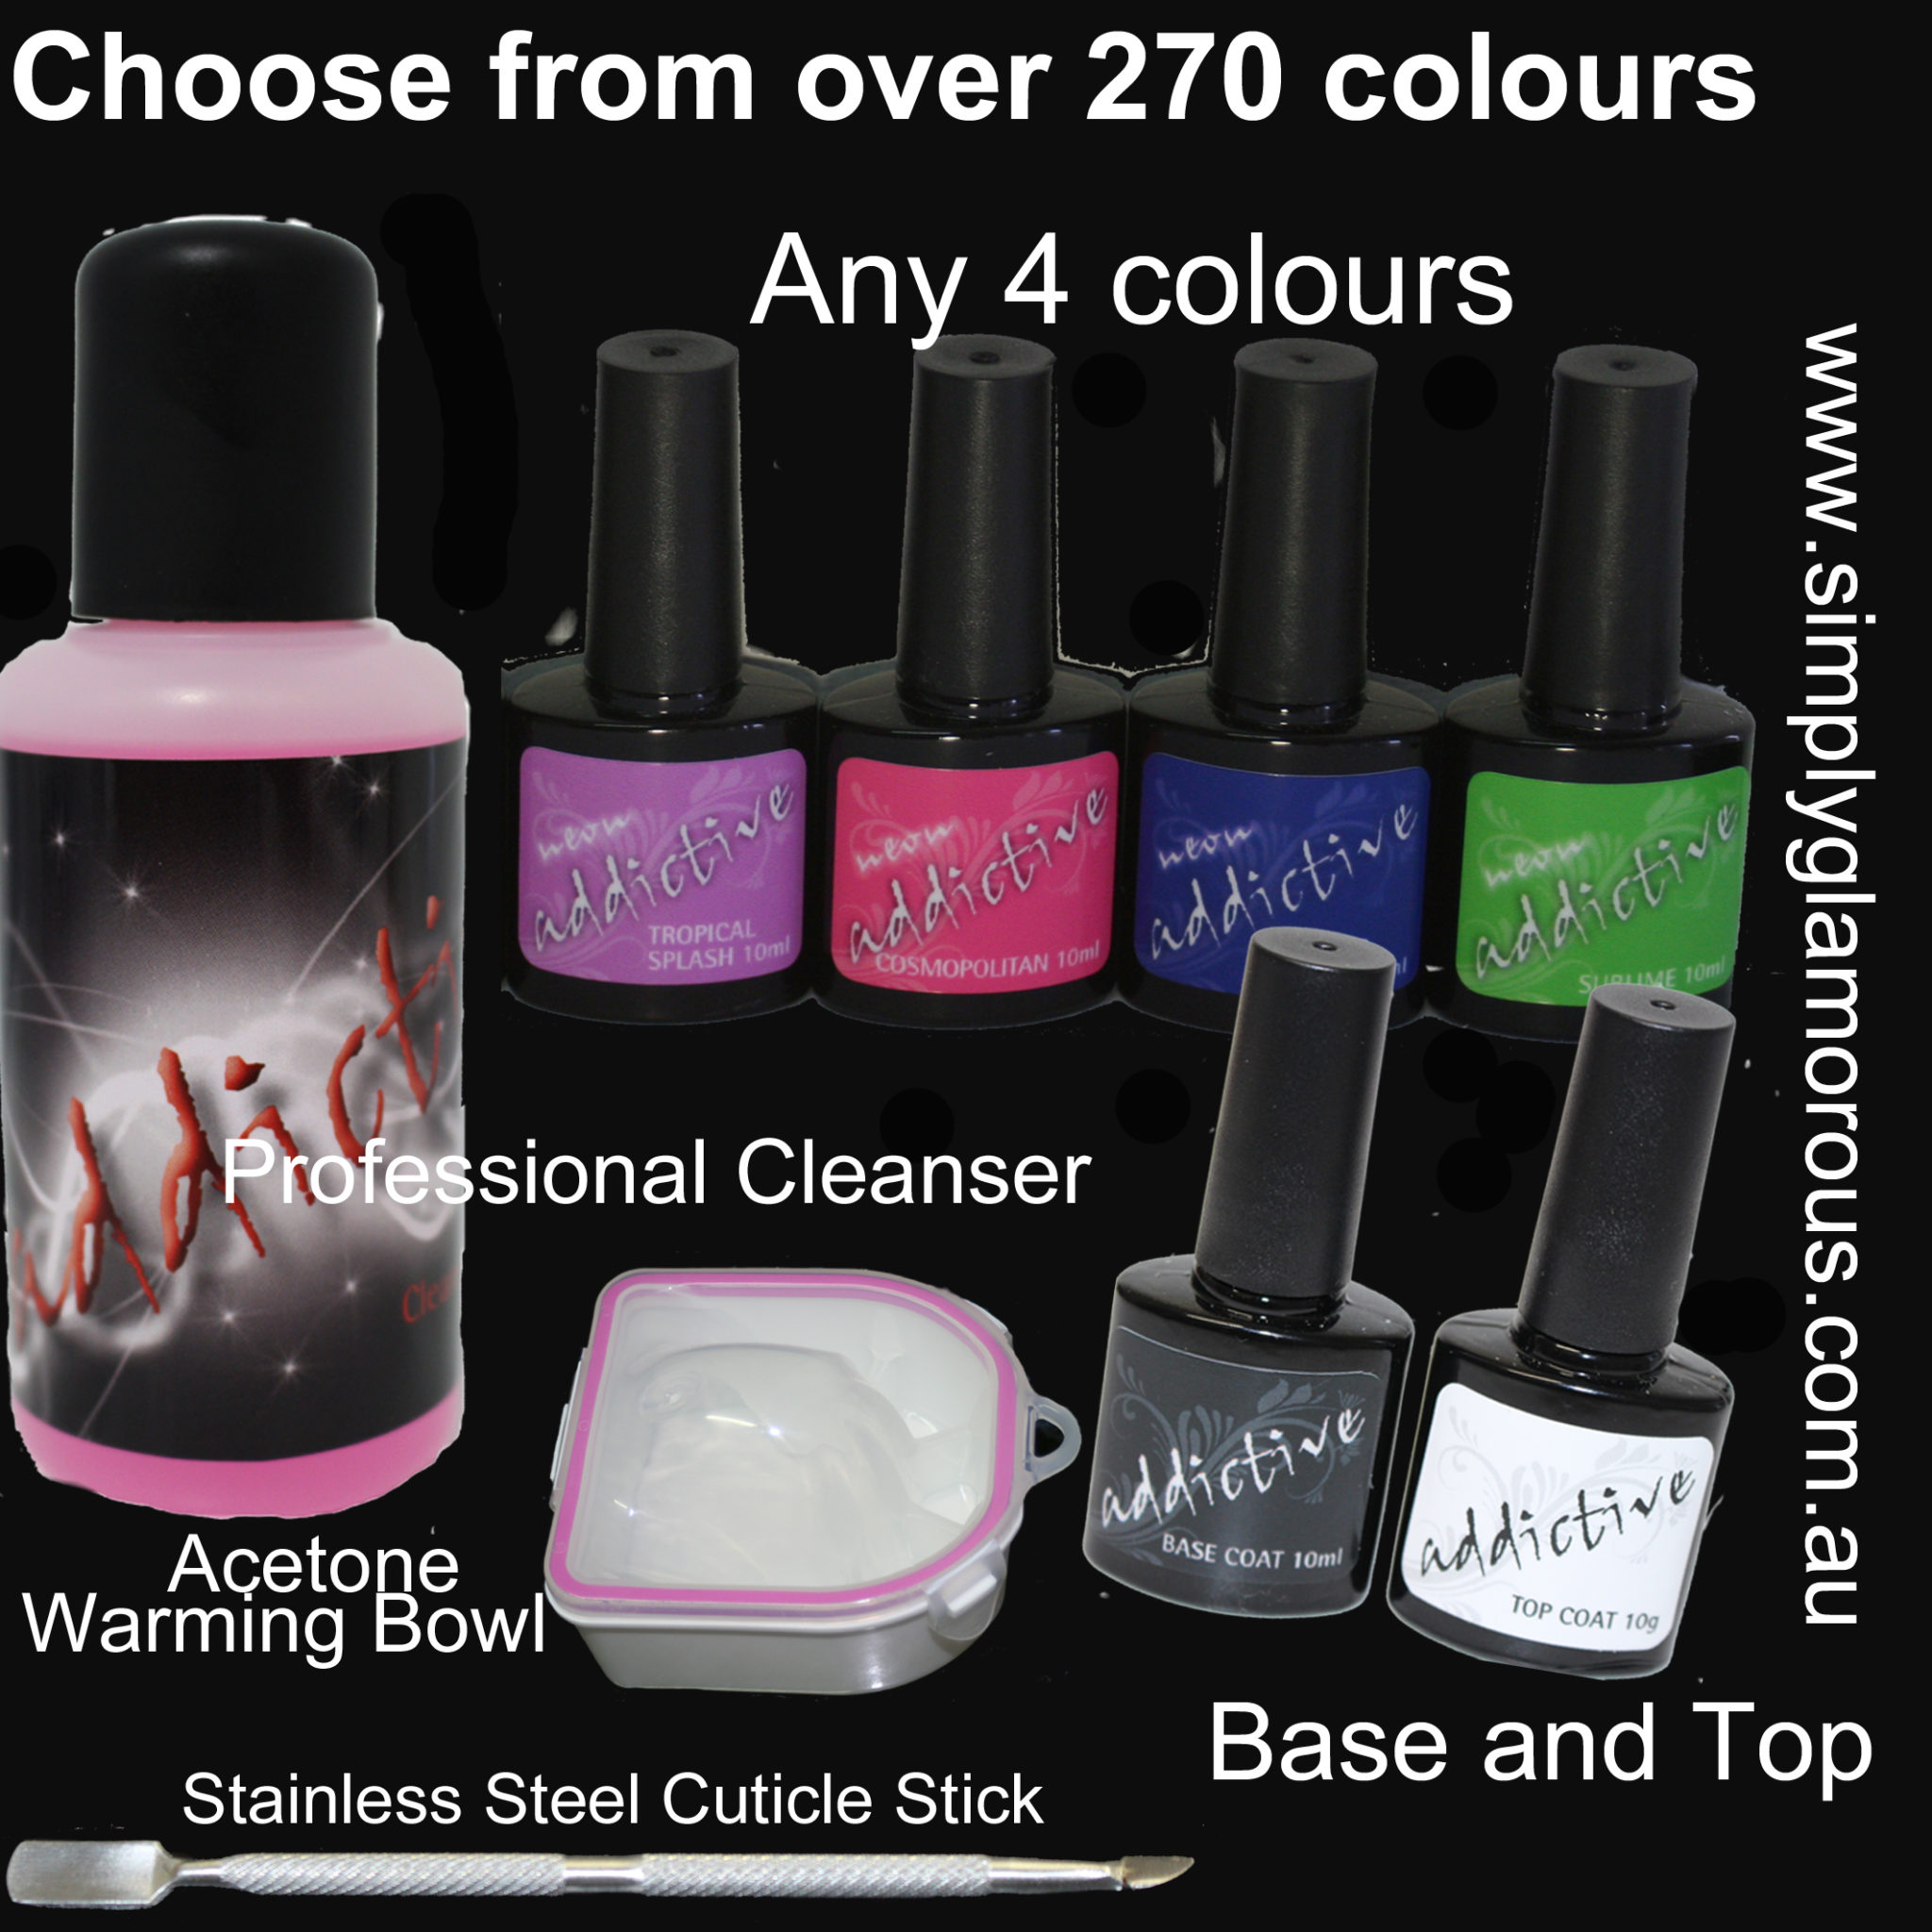 Uv Gel Nail Polish Starter Kit: 6 Bottle Addictive UV LED Gel Nail Polish Starter Kit